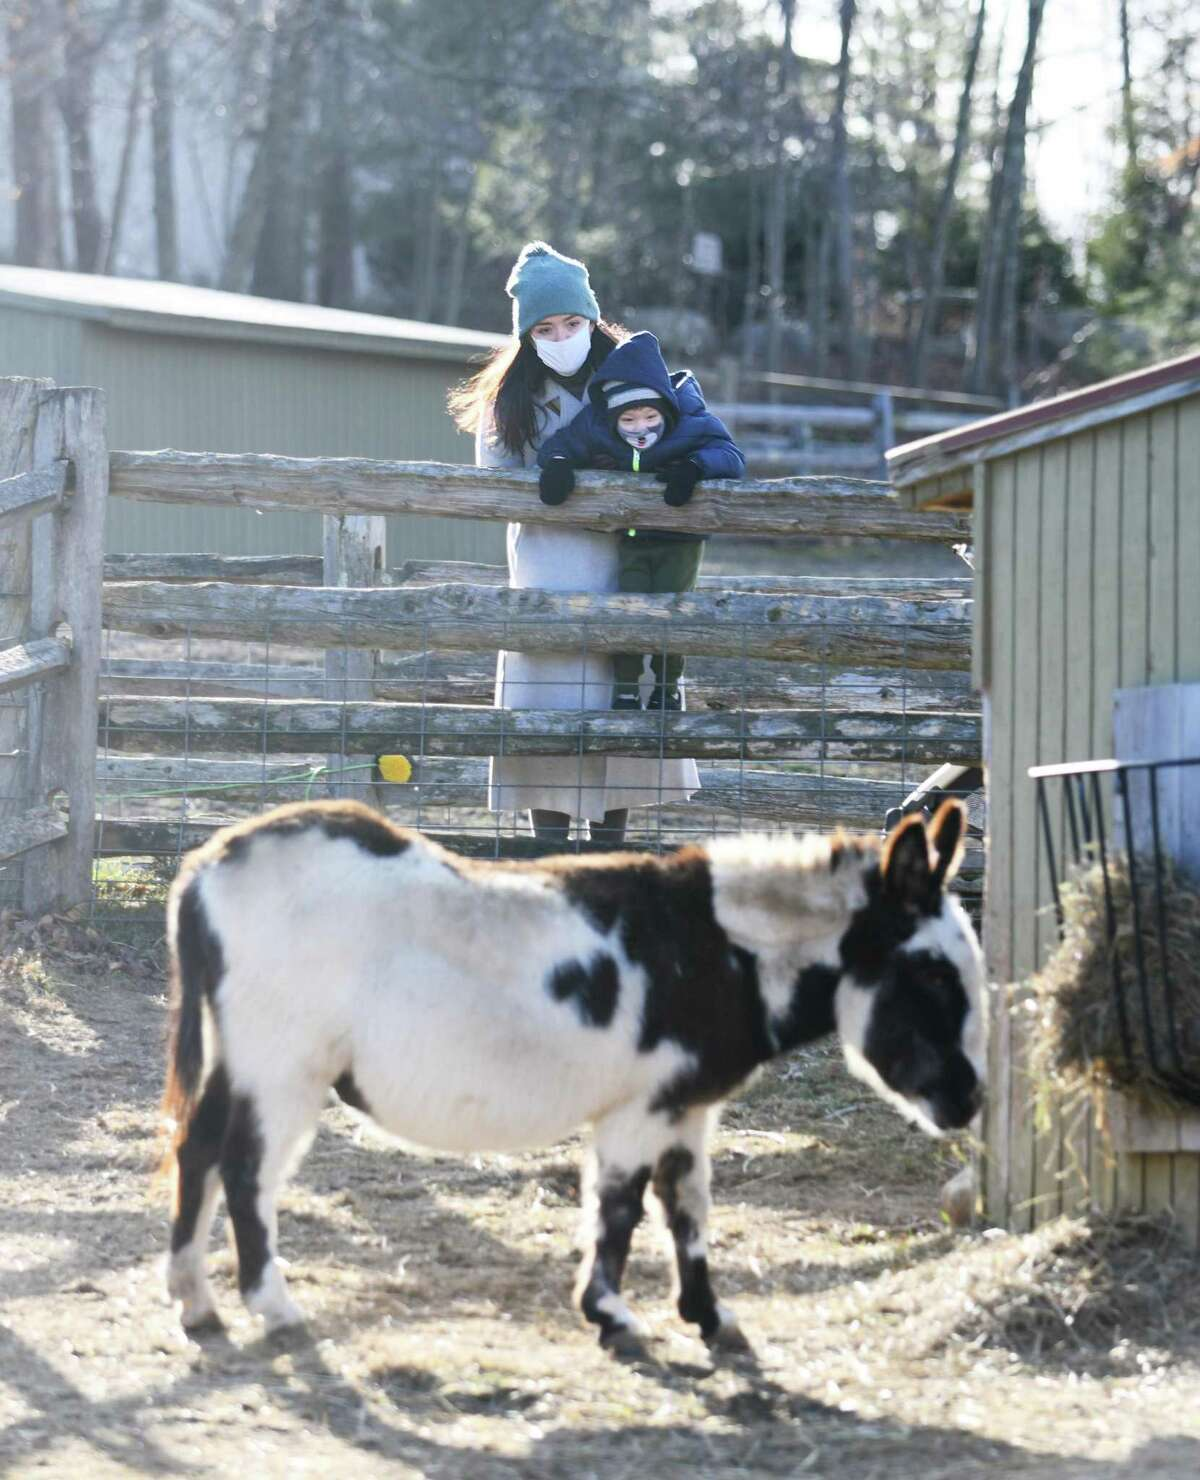 Stamford's Maggie Heinz and her son, Robbie, 3, look upon a Jacob ram at the Stamford Museum & Nature Center on Sunday. Heckscher Farm at the Museum & Nature Center features a maple sugar house, organic farm, and dozens of animals.